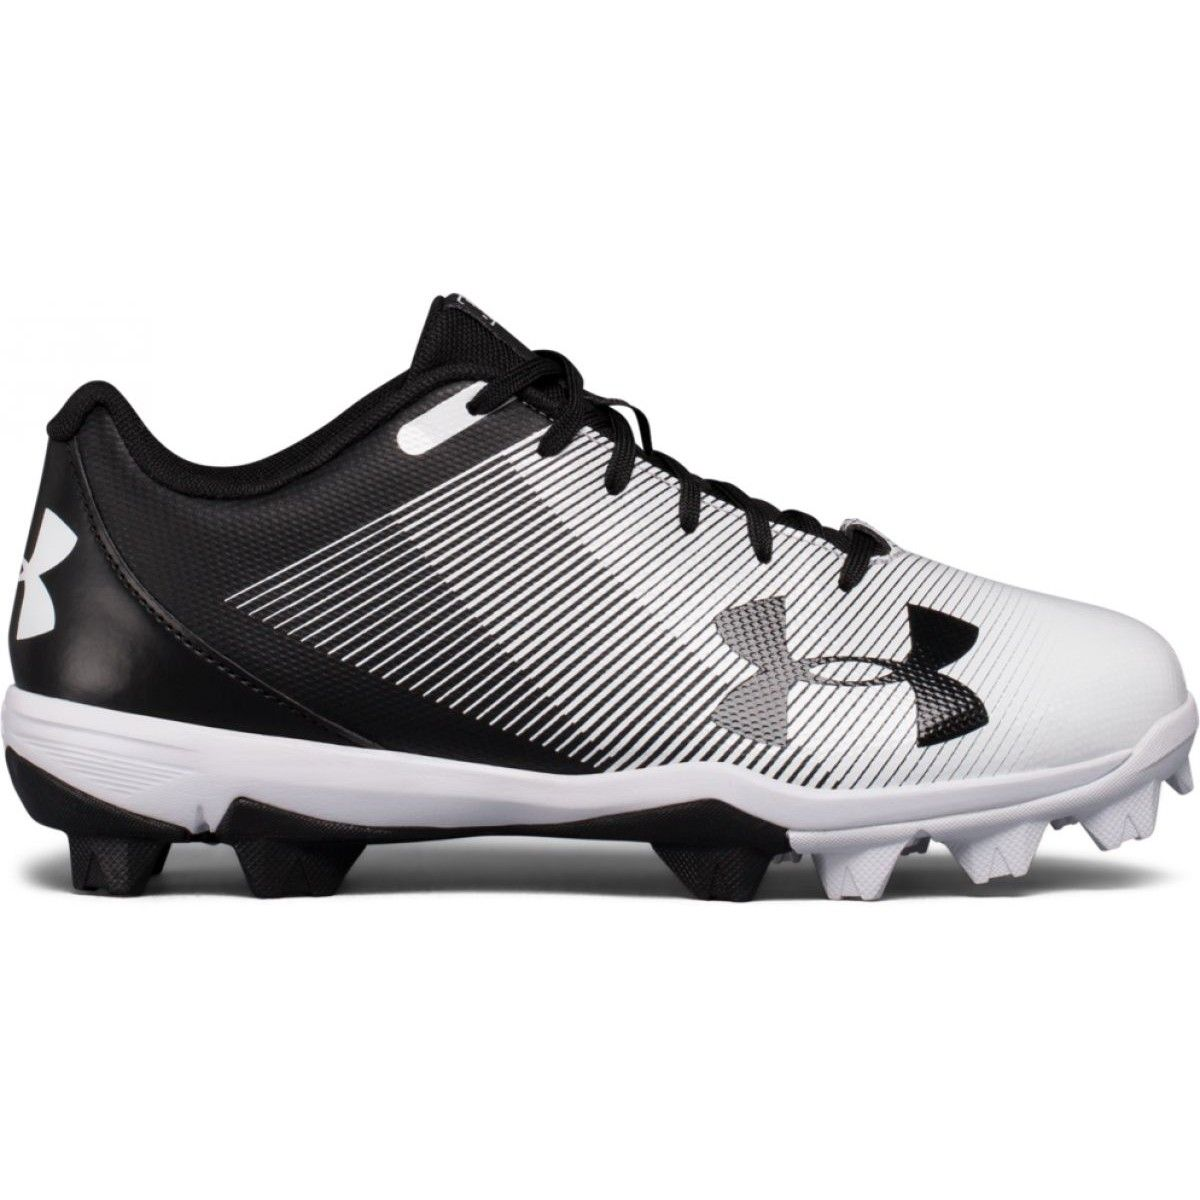 Under Armour Youth Leadoff Low Molded